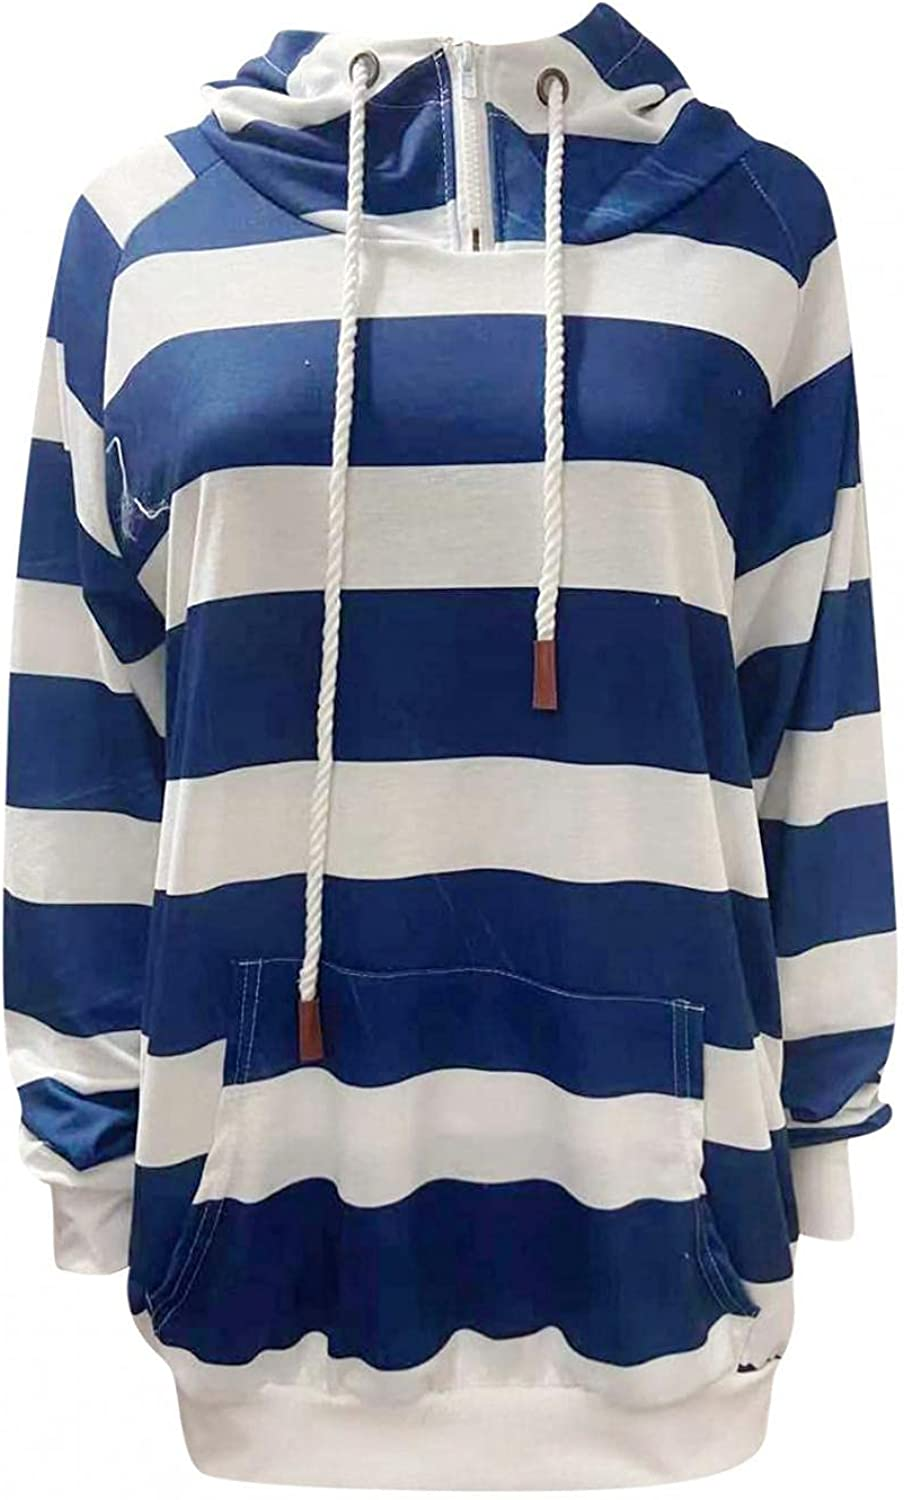 Super beauty product restock quality top HUOJING Winter Hoodie Outlet ☆ Free Shipping for Women Long Striped Sweatshirt Hooded S